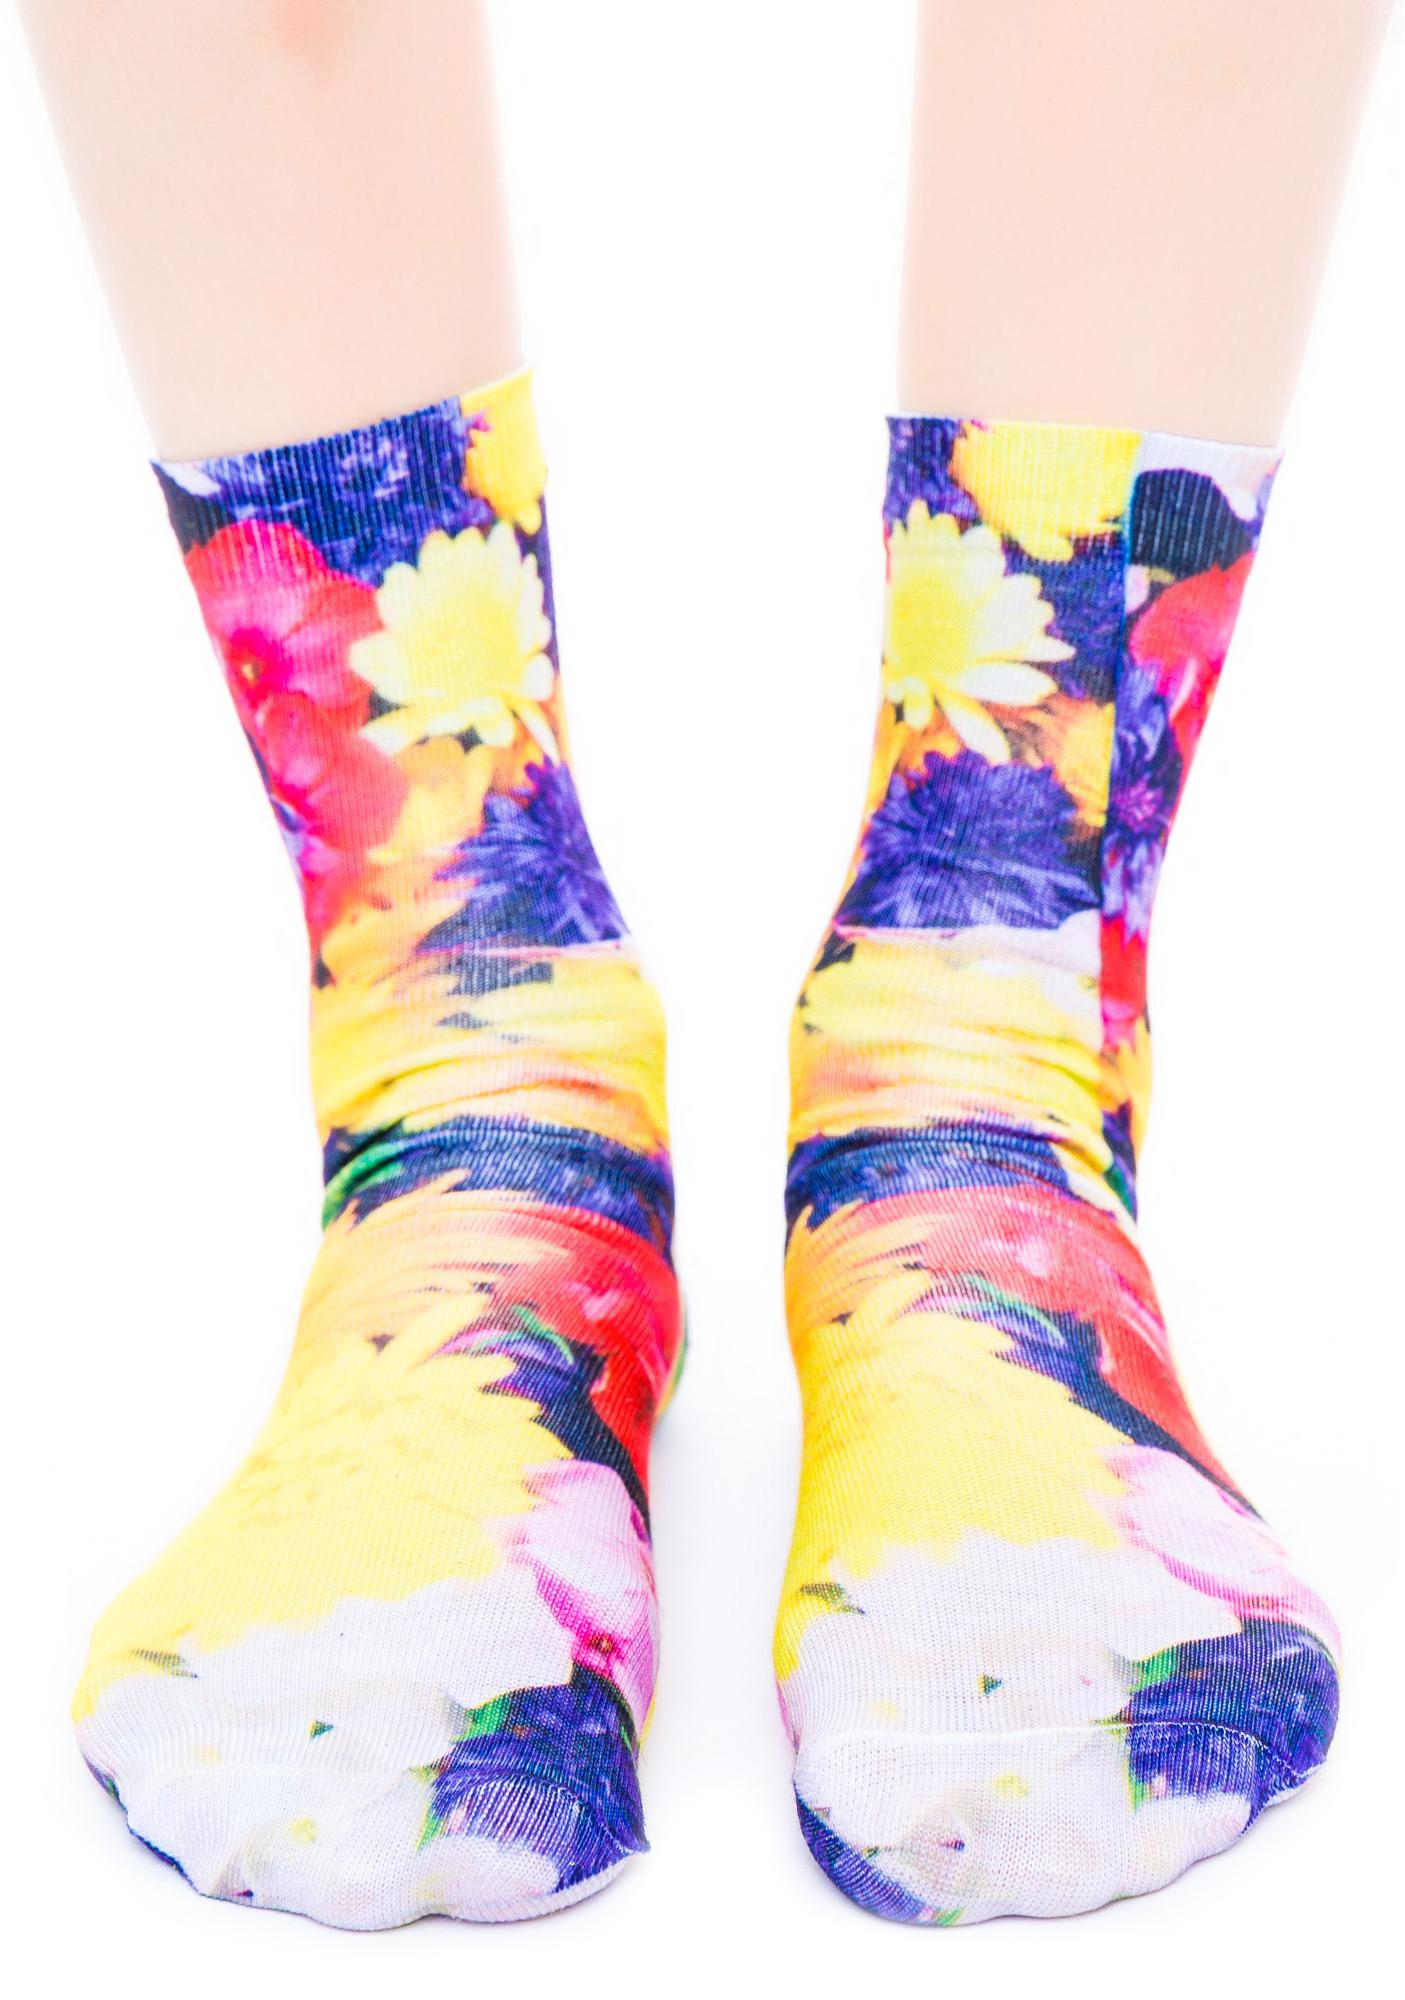 Botanical Garden Socks